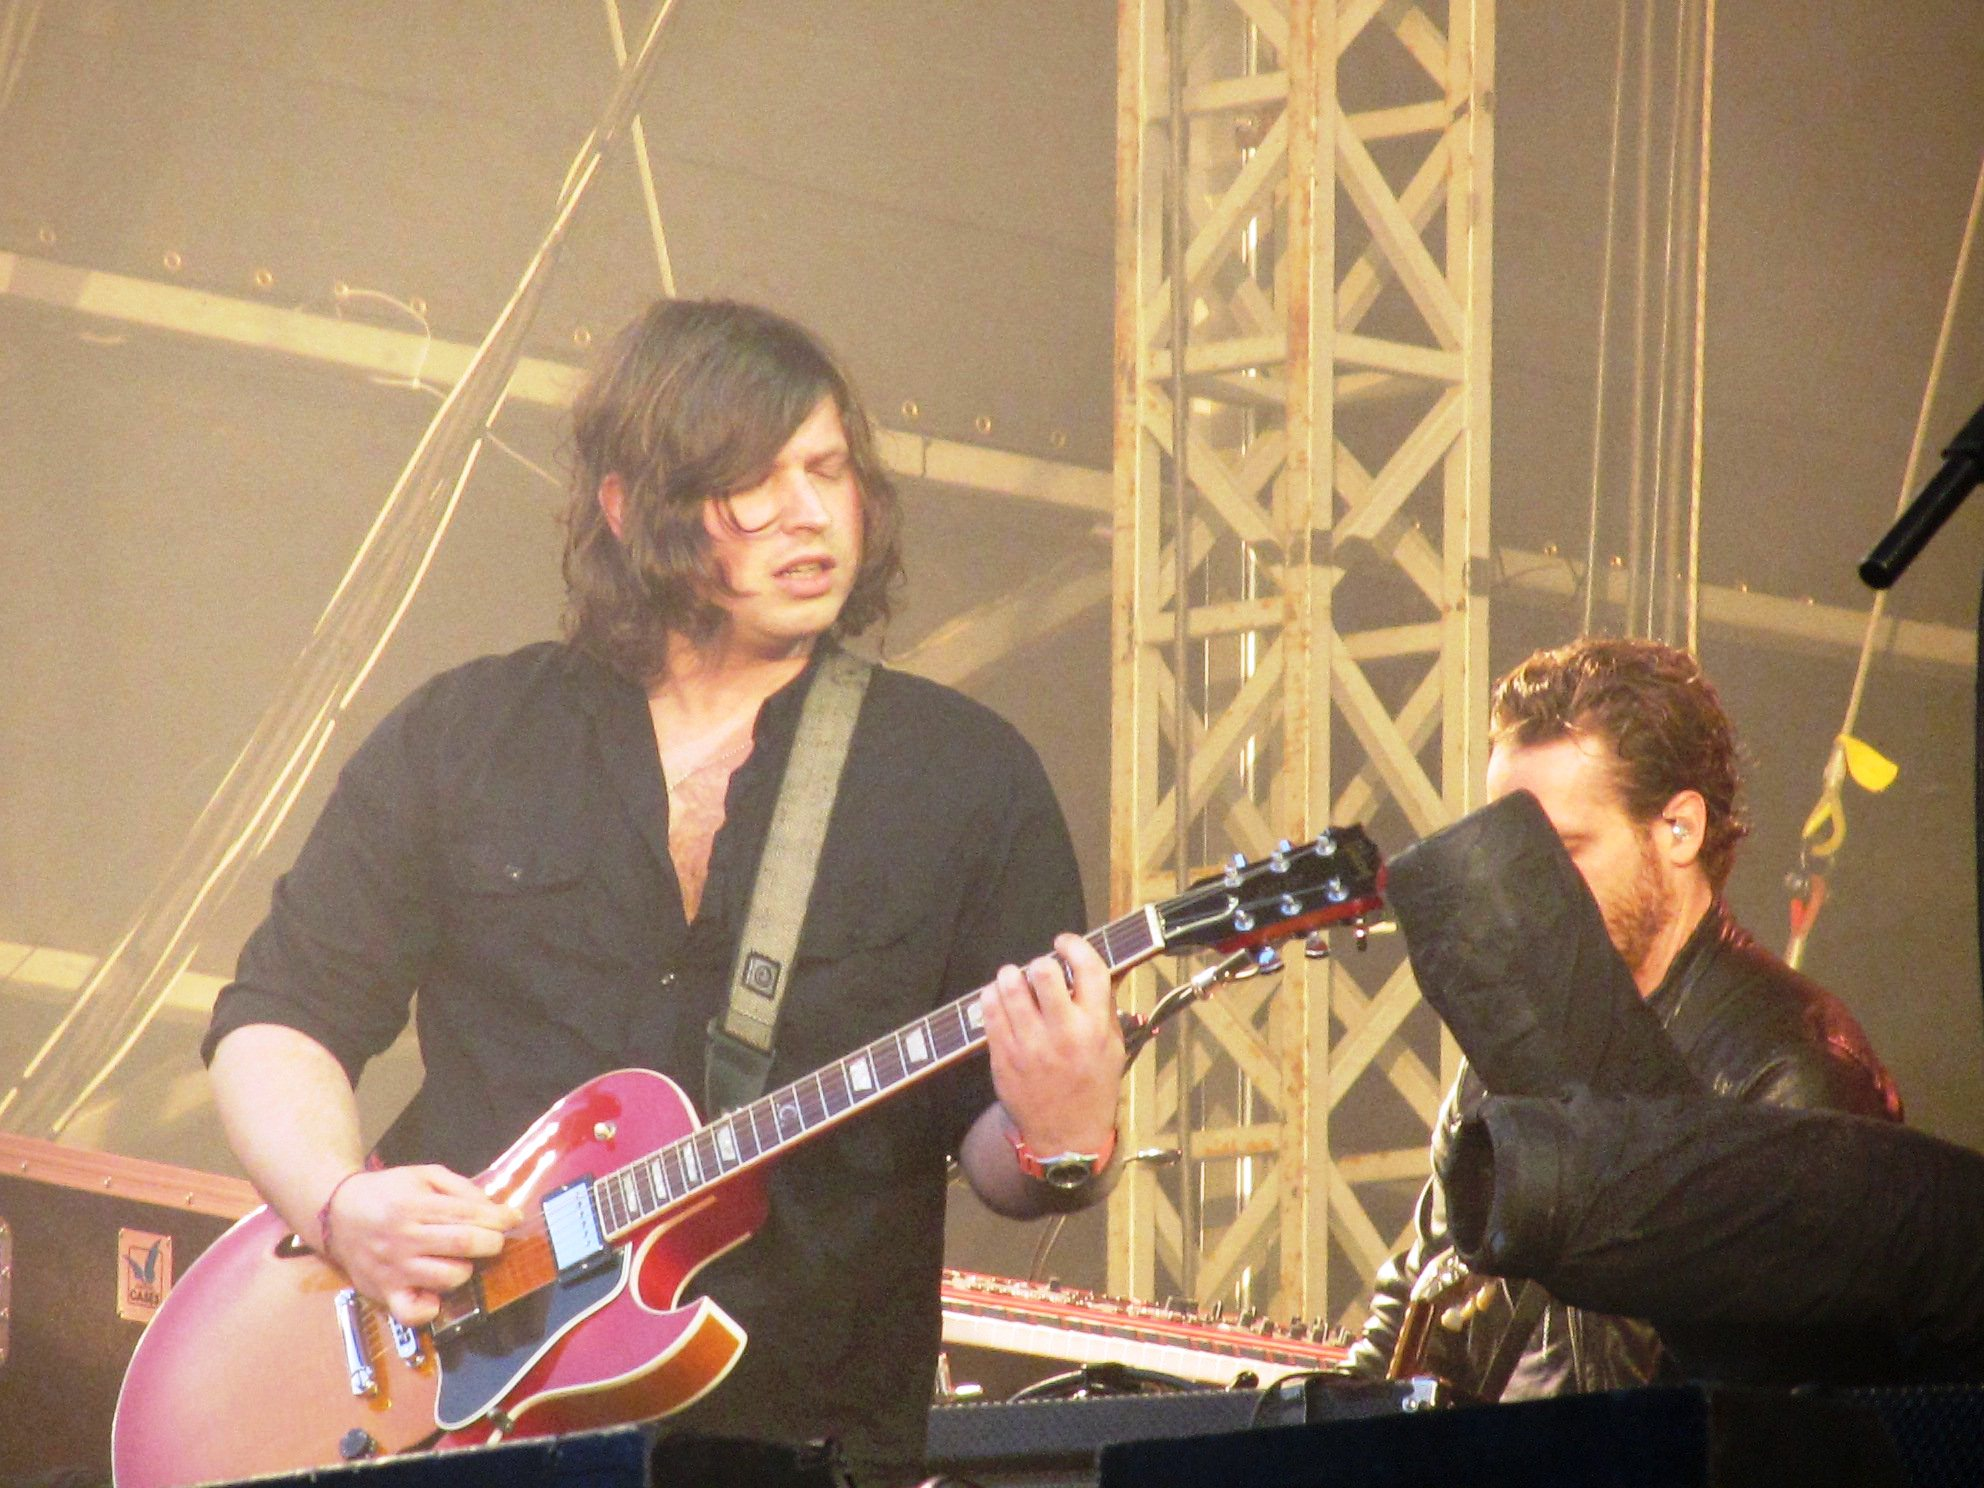 Hyde Park, London (22 Jun 11)